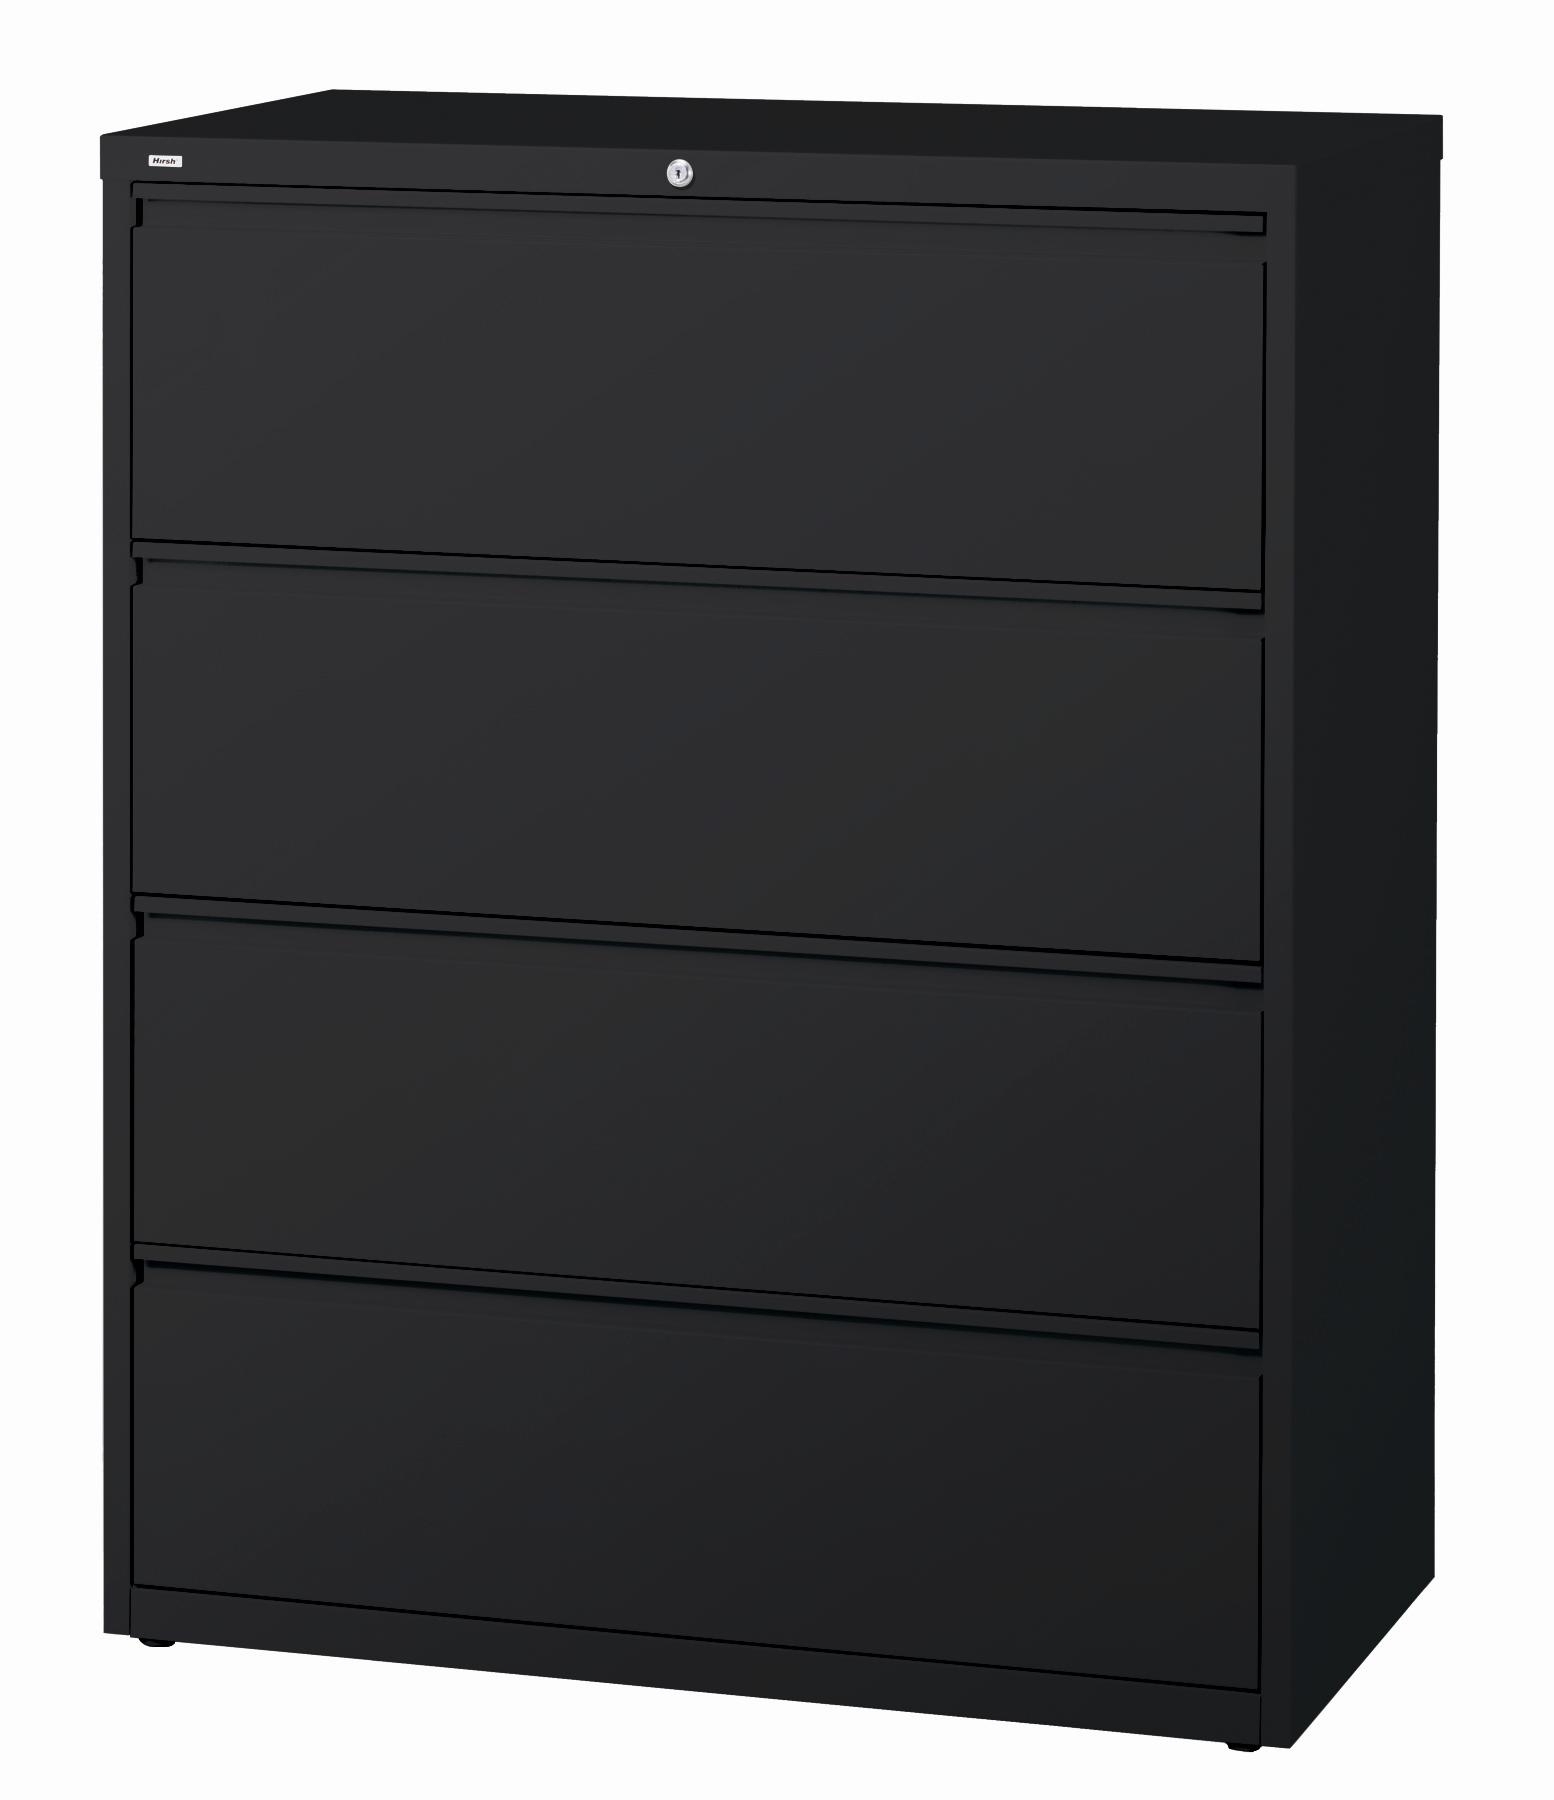 shop hirsh hl10000 series 42-inch wide 4-drawer commercial lateral